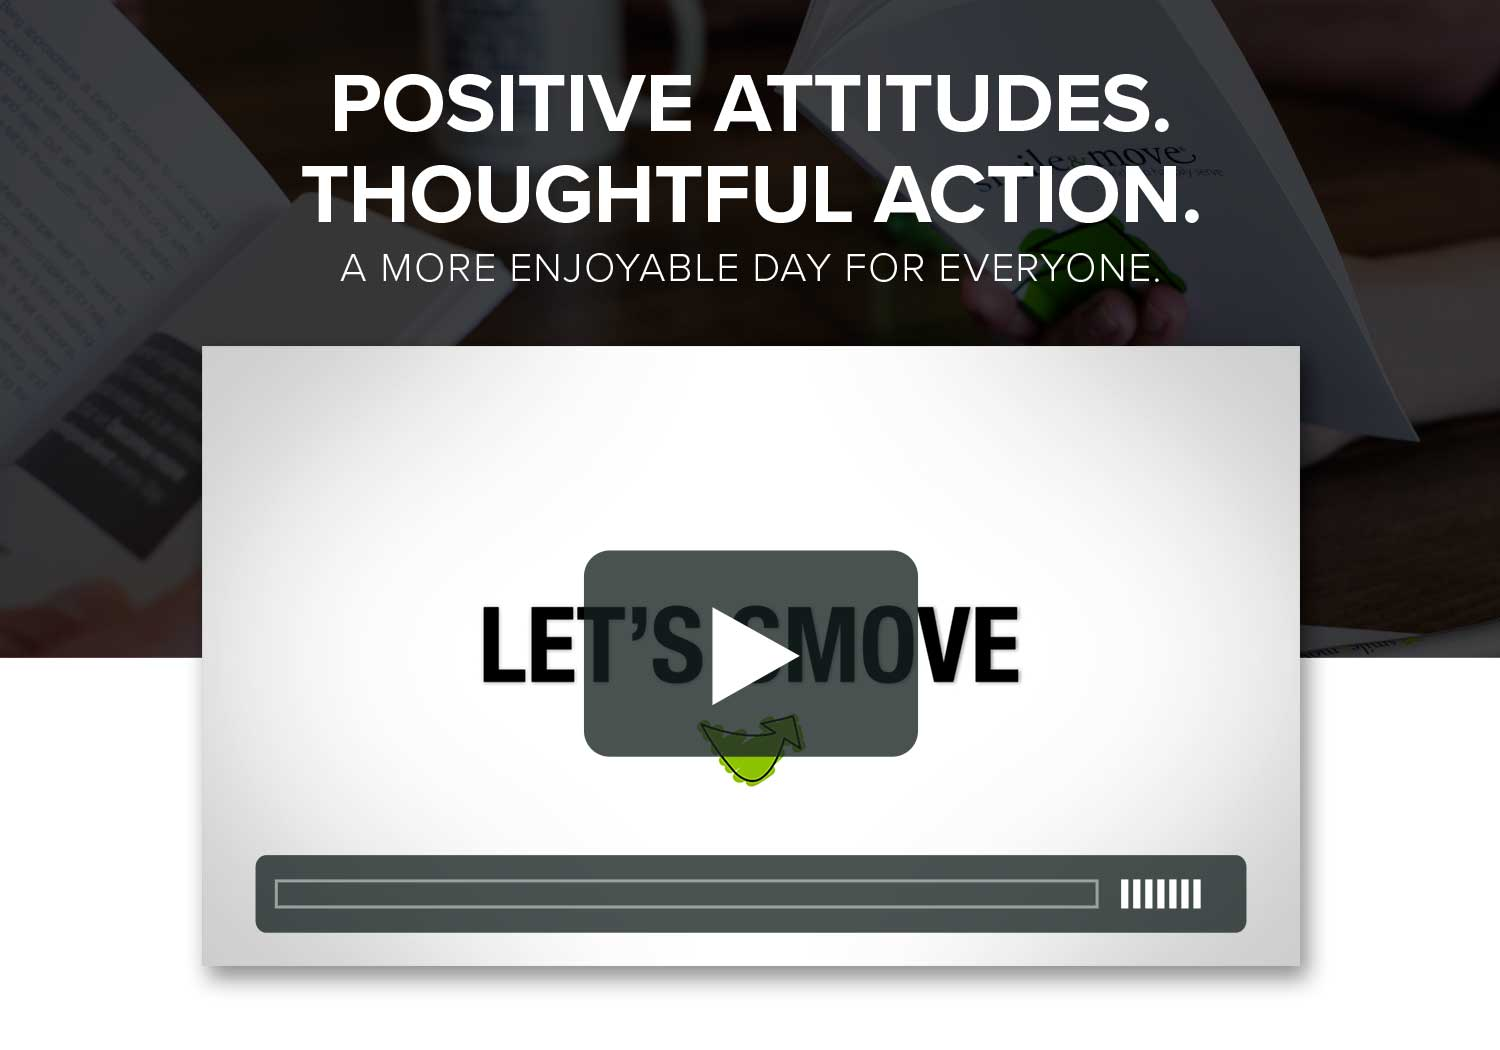 Positive attitudes. Thoughtful action. A more enjoyable day (for everyone).